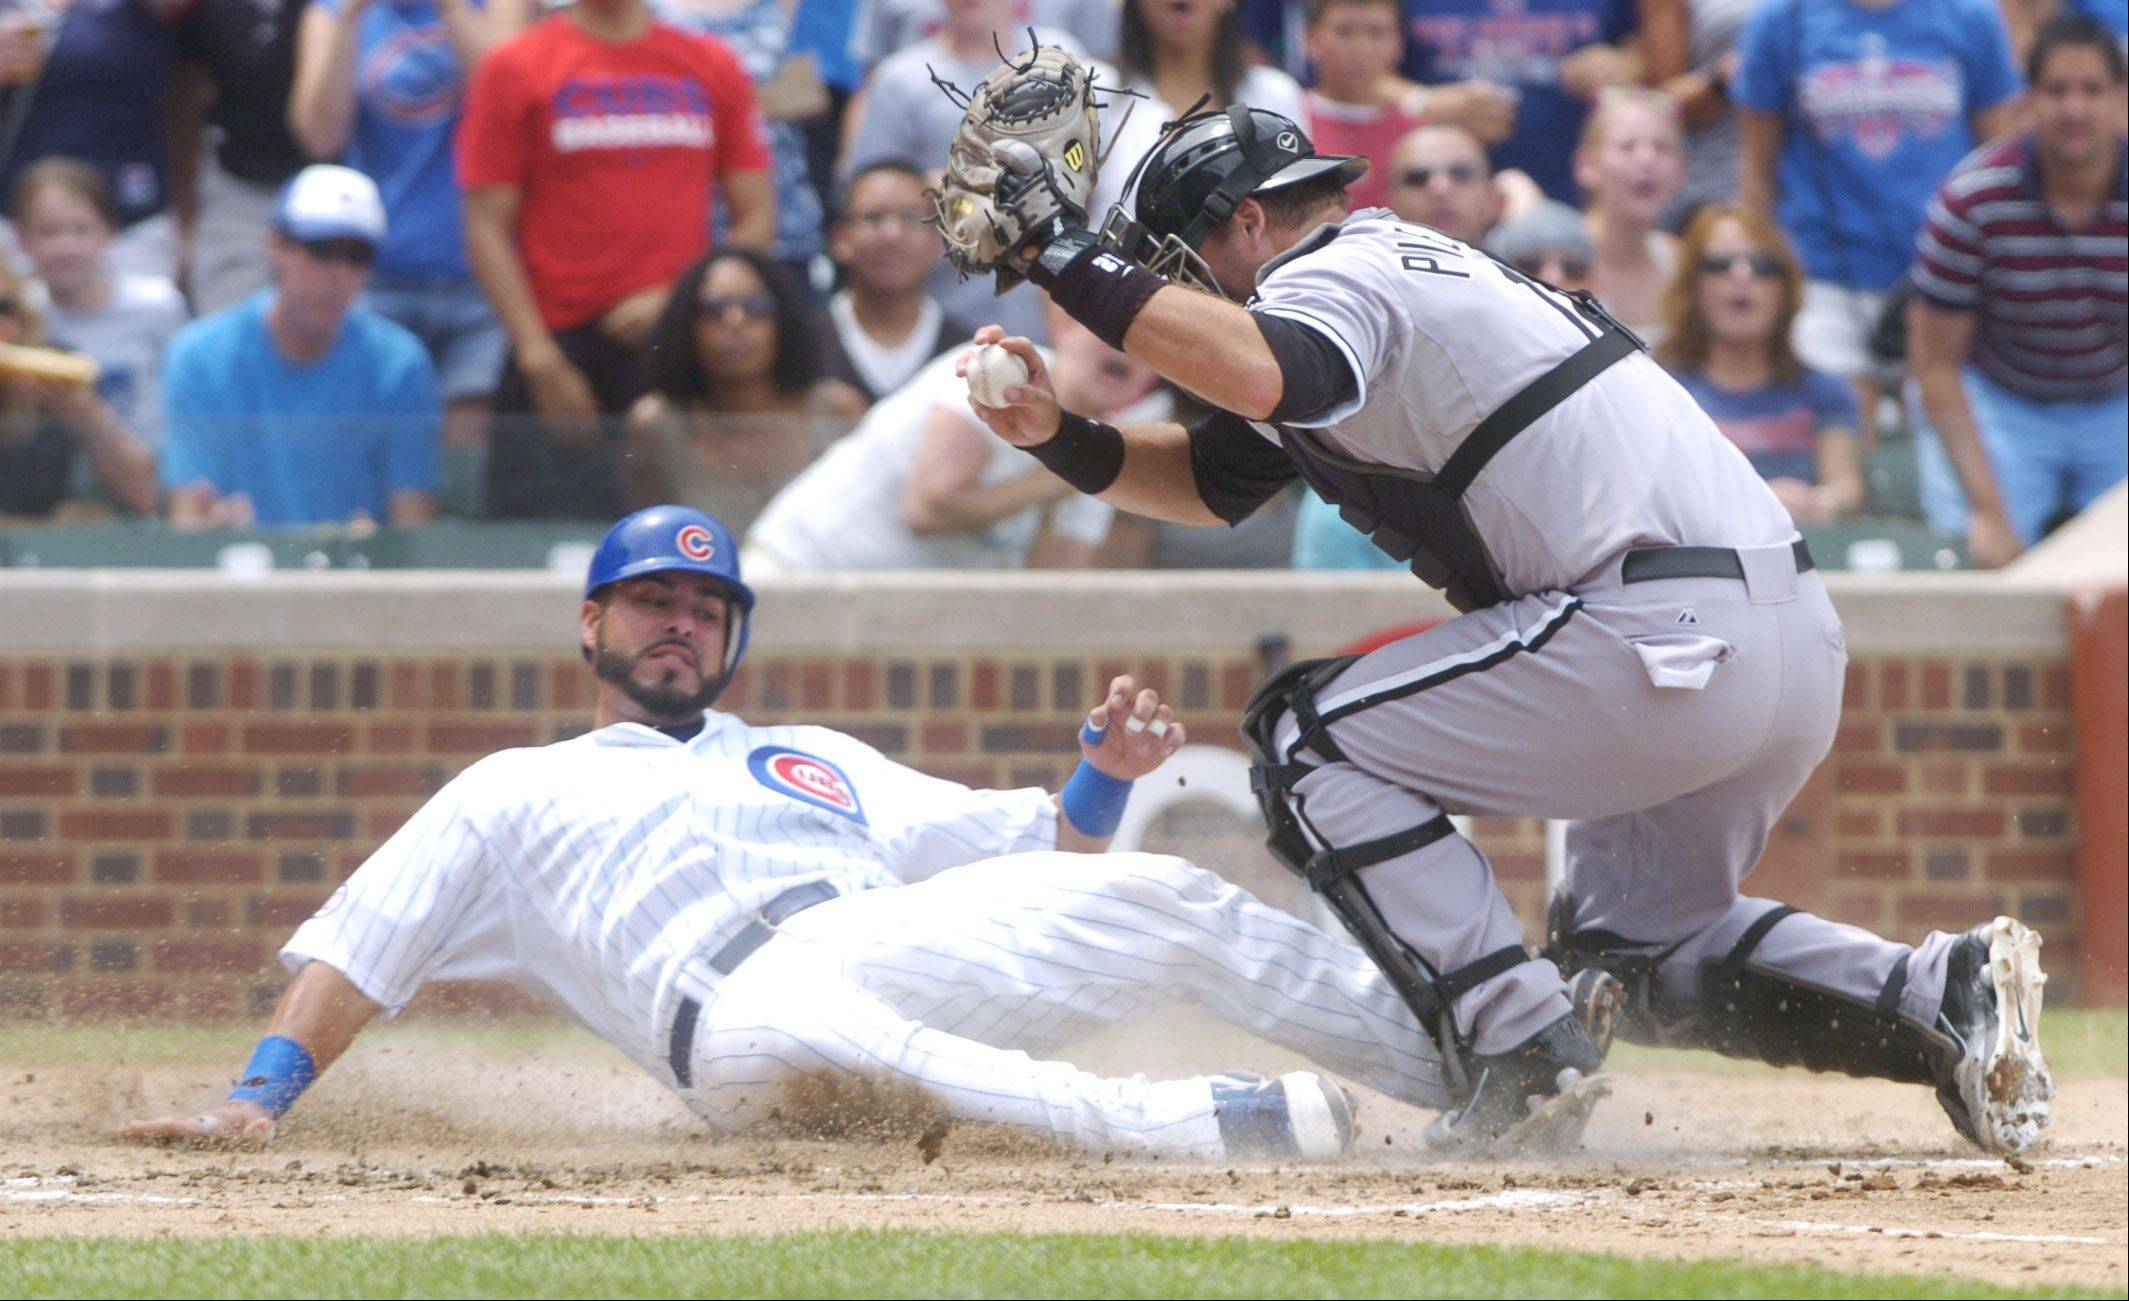 Geovany Soto of the Cubs gets tagged out at the plate by White Sox catcher A.J. Pierzynski to end the third inning of Sunday's game at Wrigley Field.